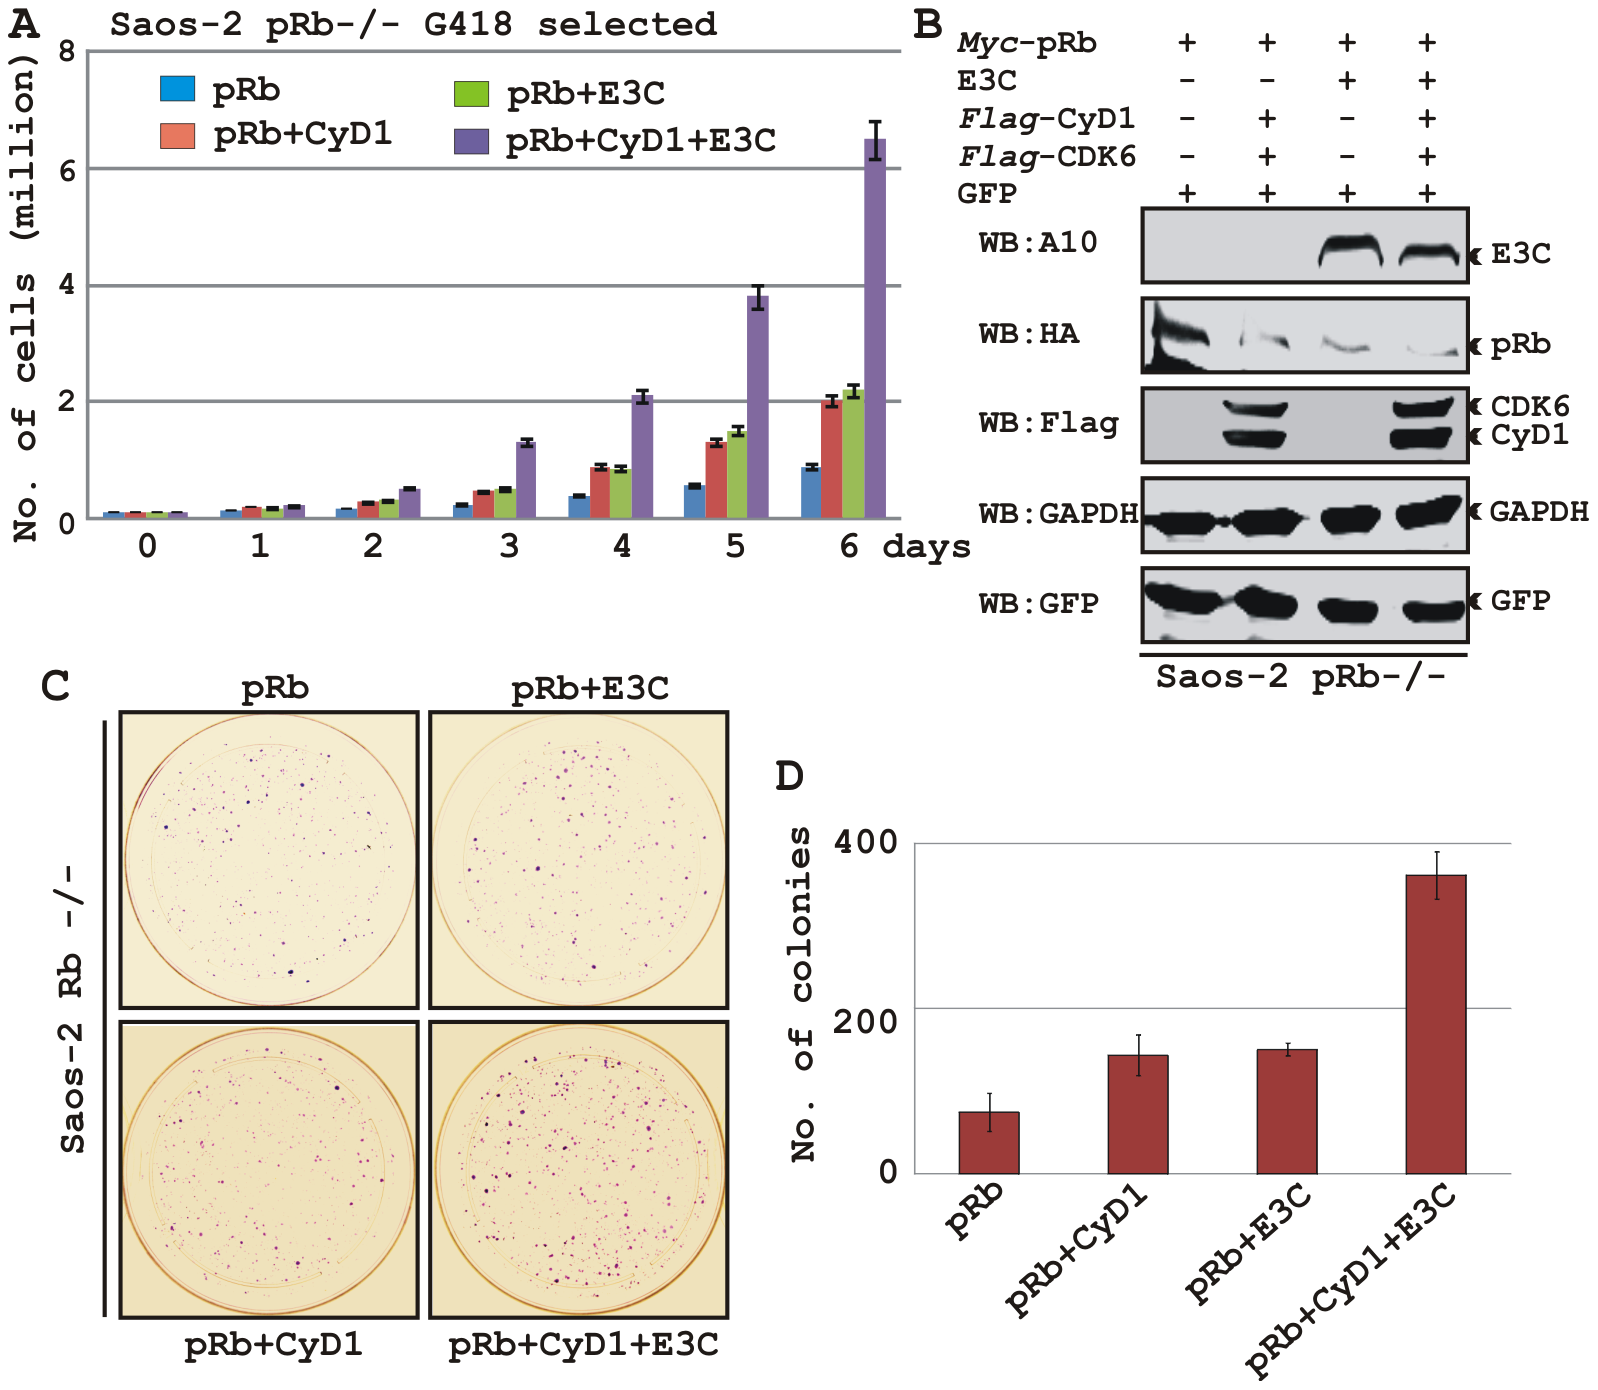 EBNA3C coupled with Cyclin D1/CDK6 complex nullifies the growth suppressive effect by pRb.